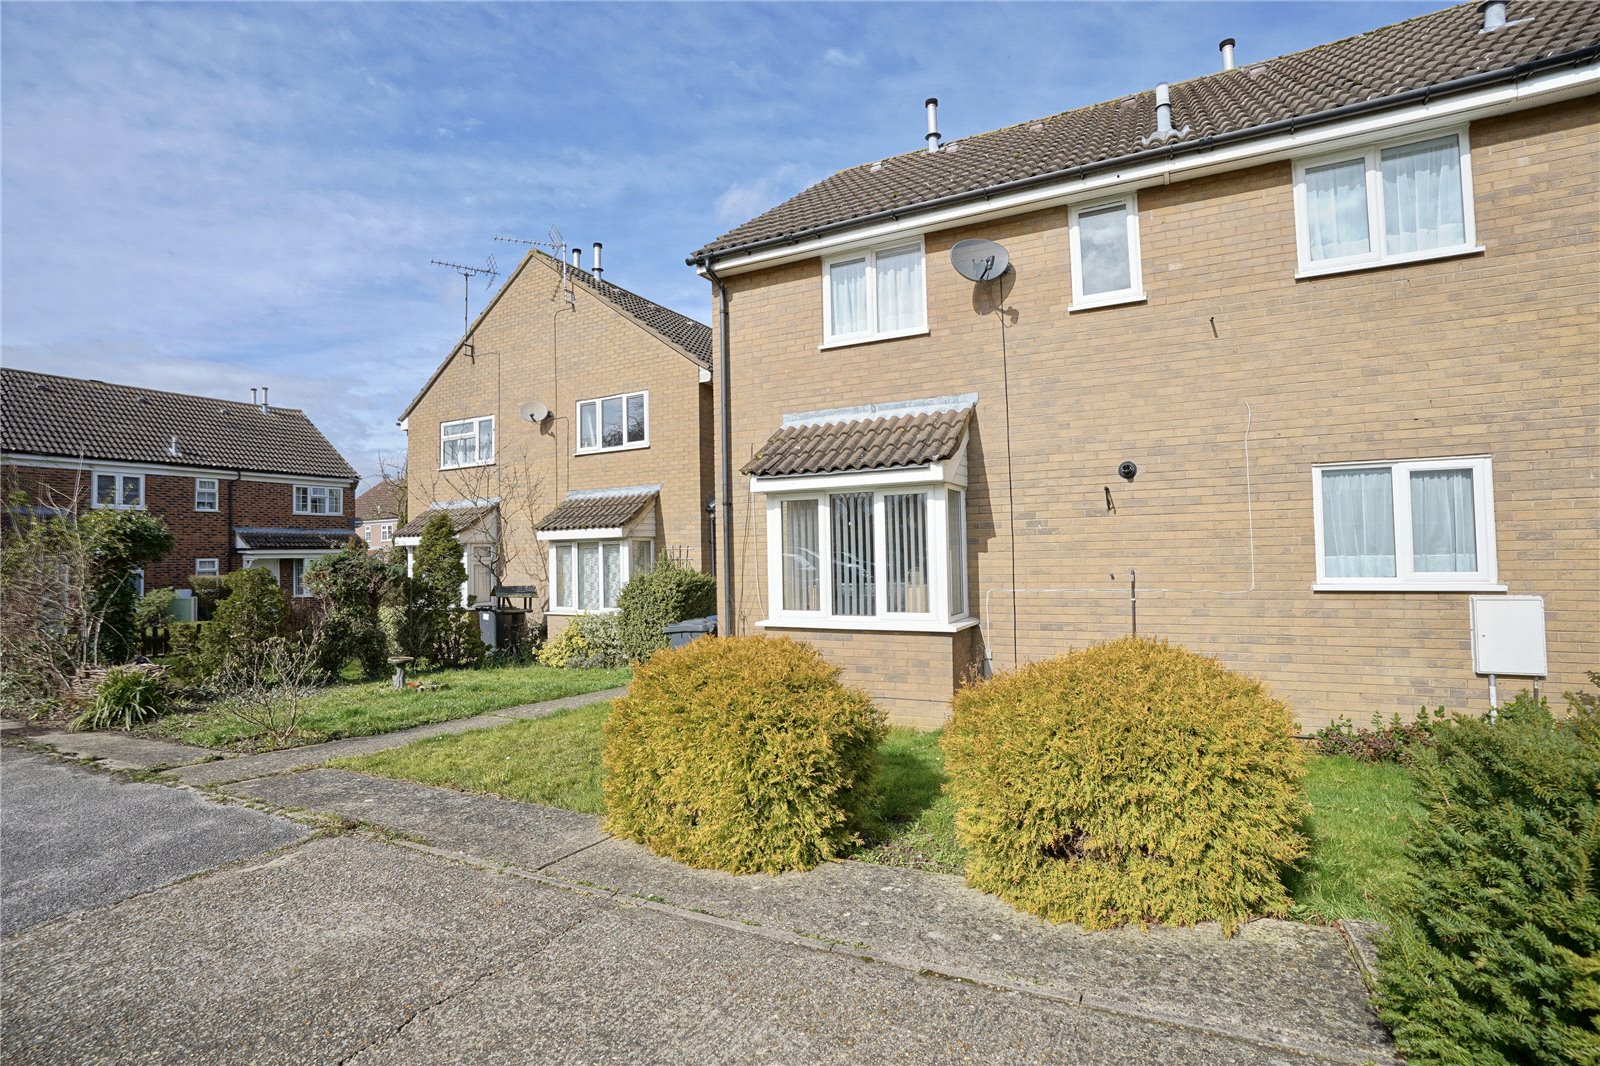 2 bed house for sale in St. Ives, PE27 3FN, PE27